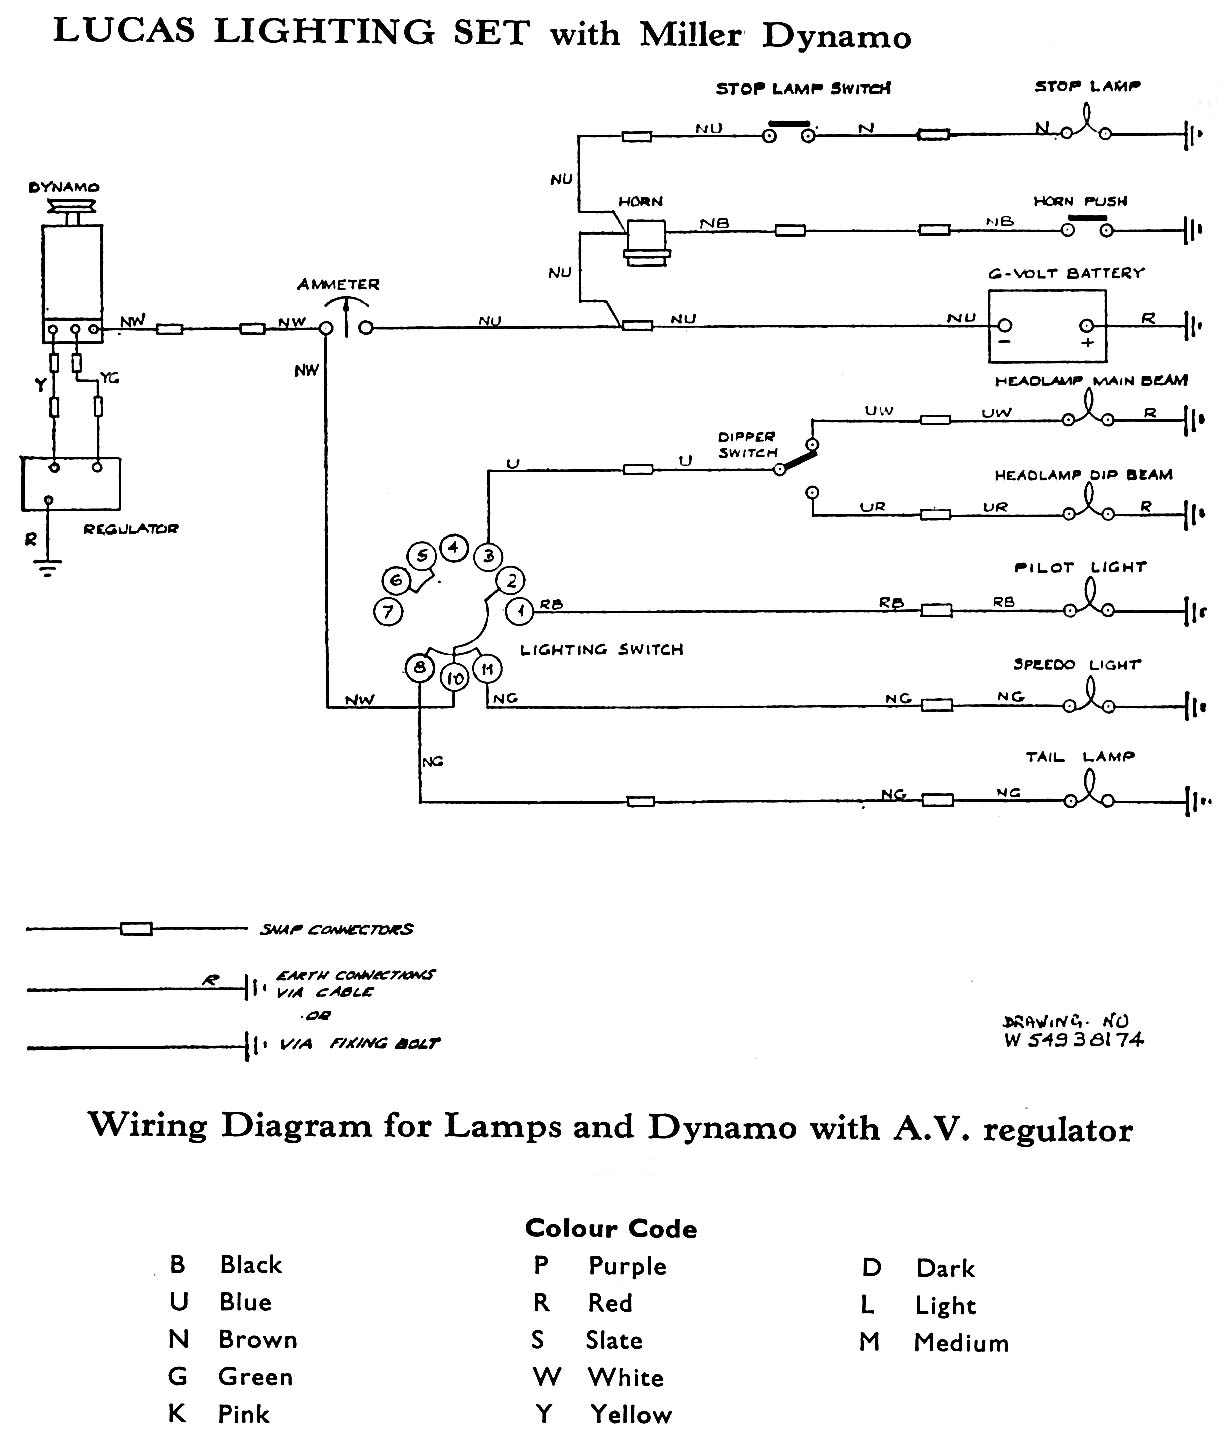 lucasmiller electrics wiring diagrams the velocette owners club lucas alternator wiring diagram at gsmx.co